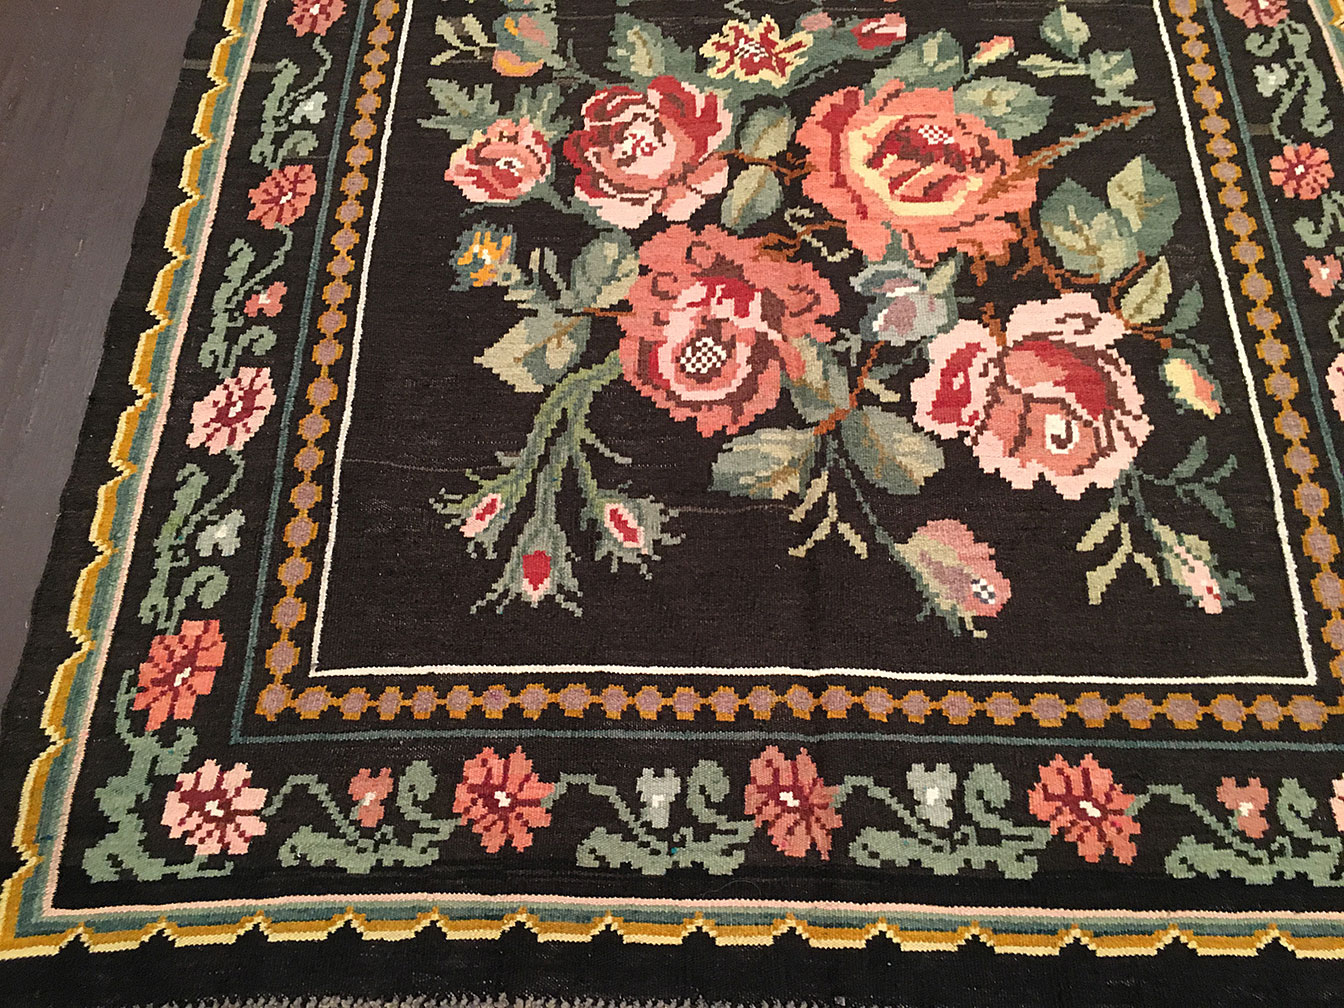 Antique bessarabian Rug - # 91009